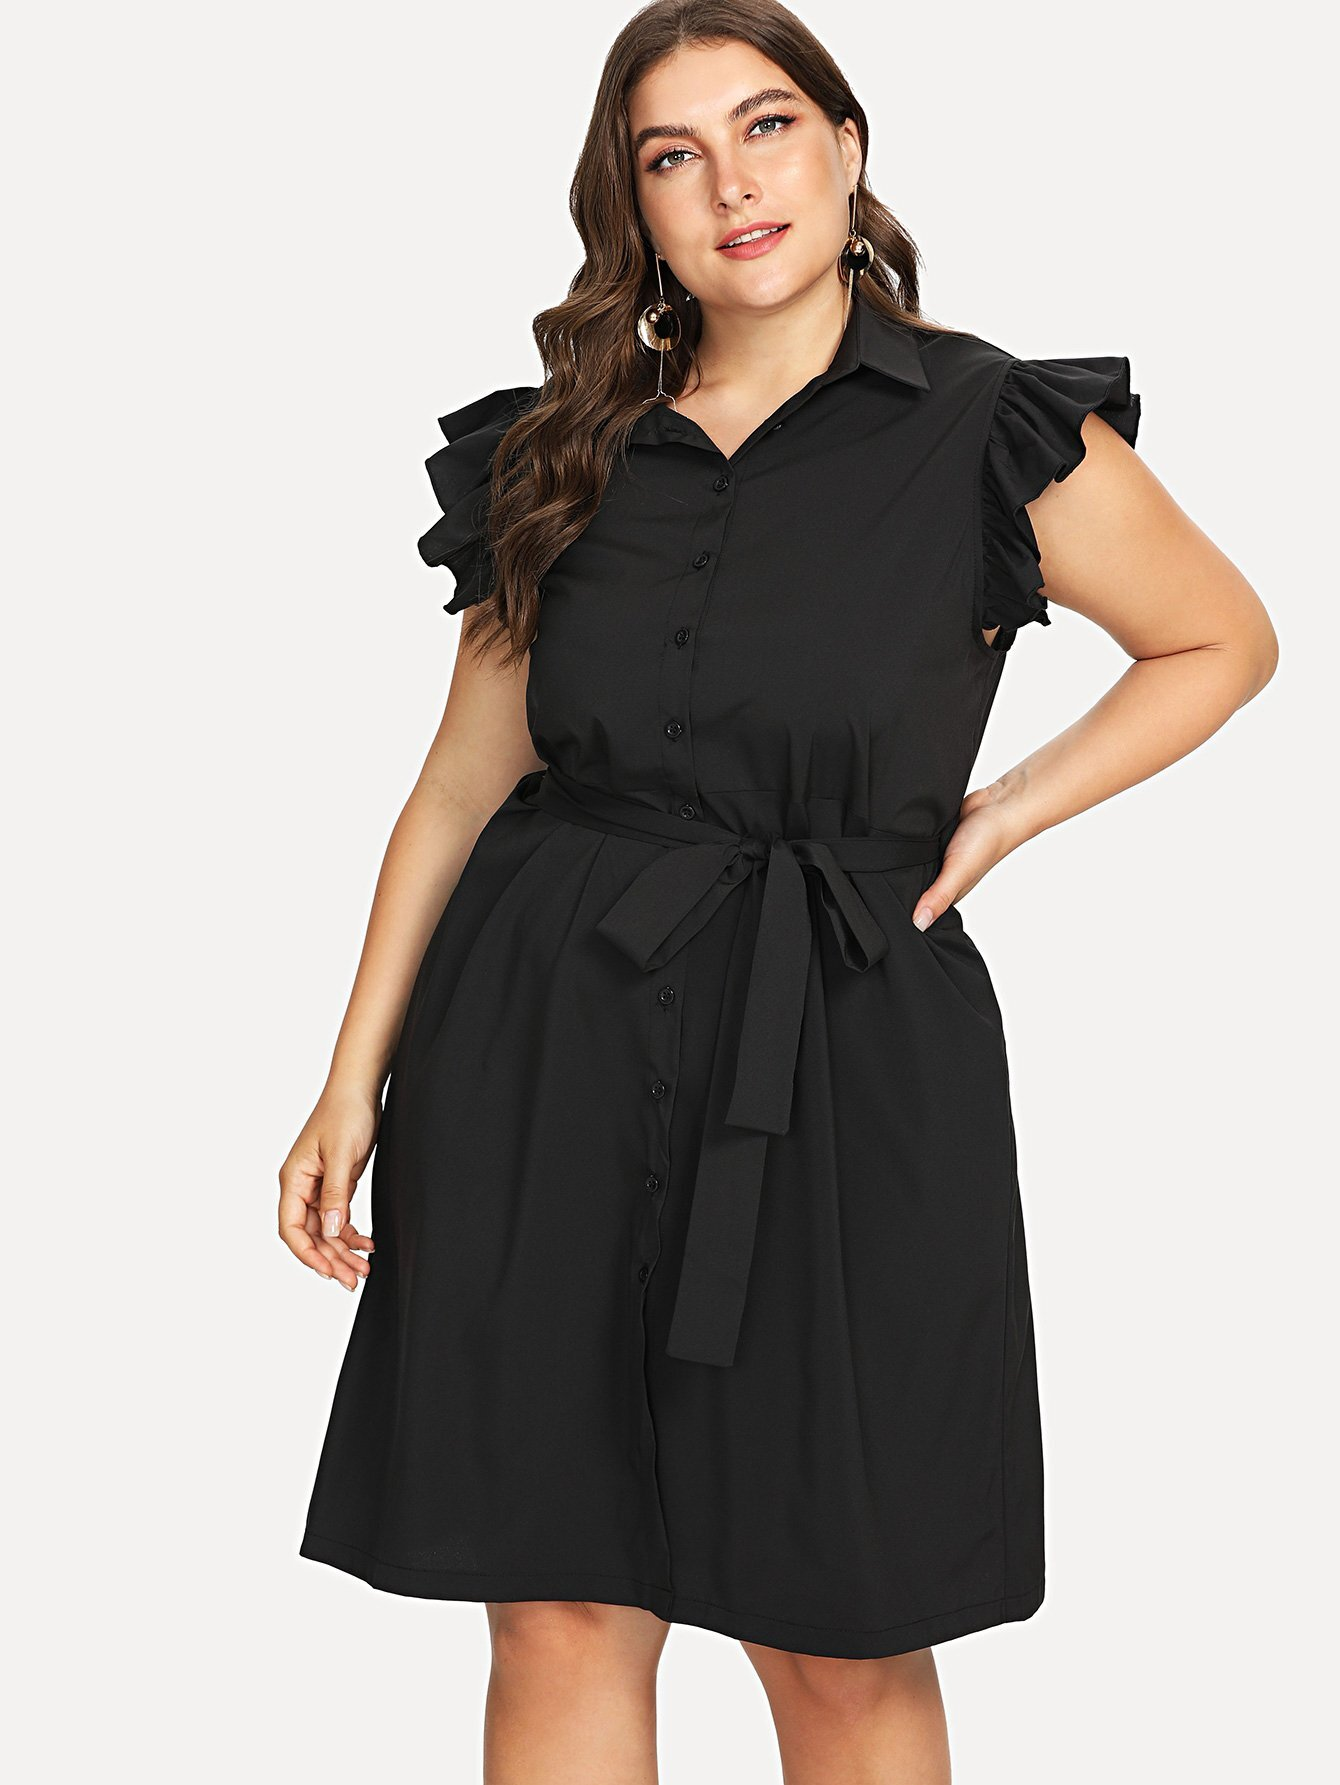 Self Tie Waist Ruffle Sleeve Shirt Dress self tie waist batwing sleeve dress